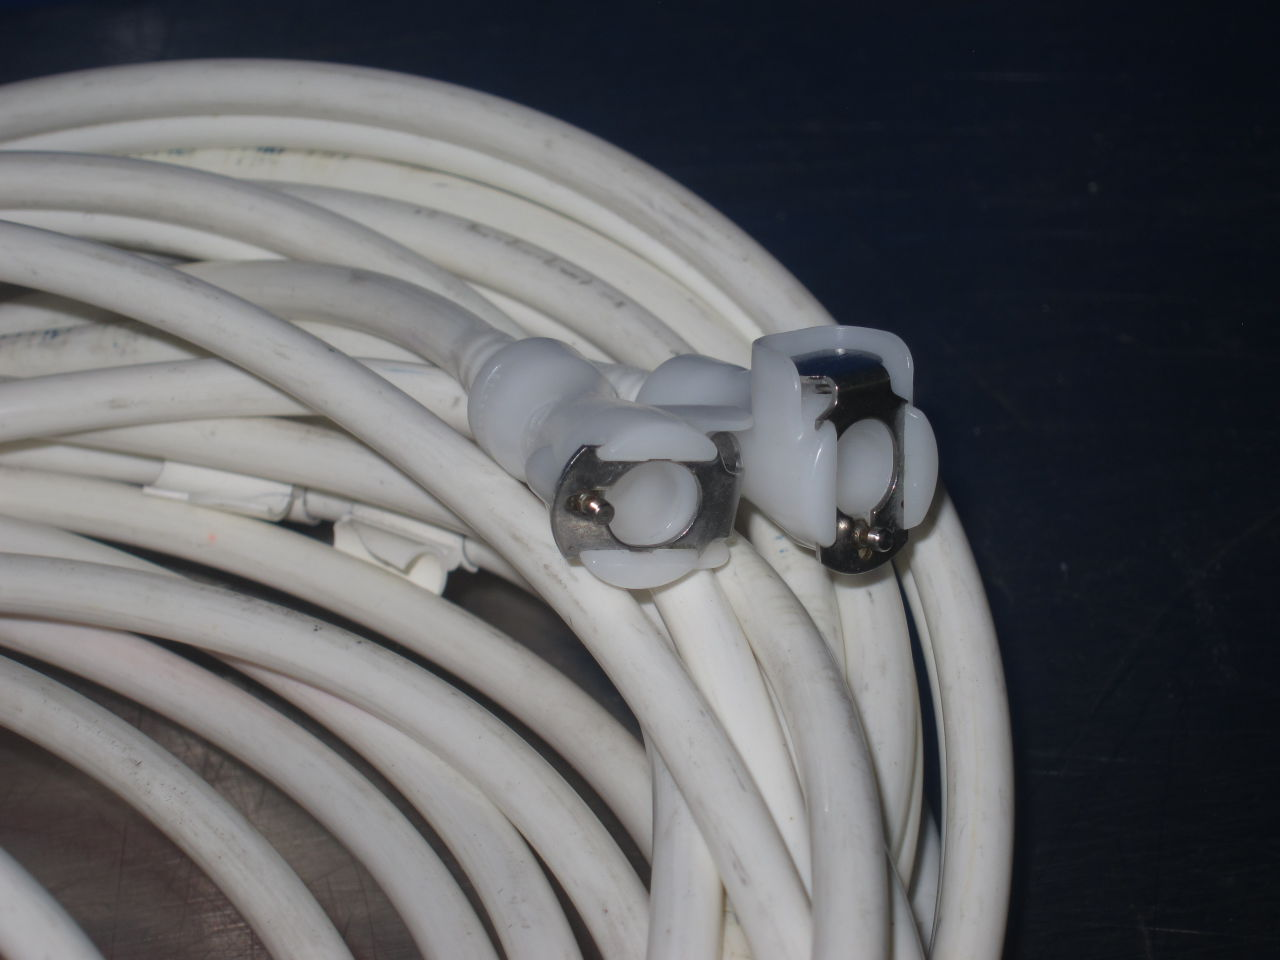 Extension Tube / Cable - Lot of 3